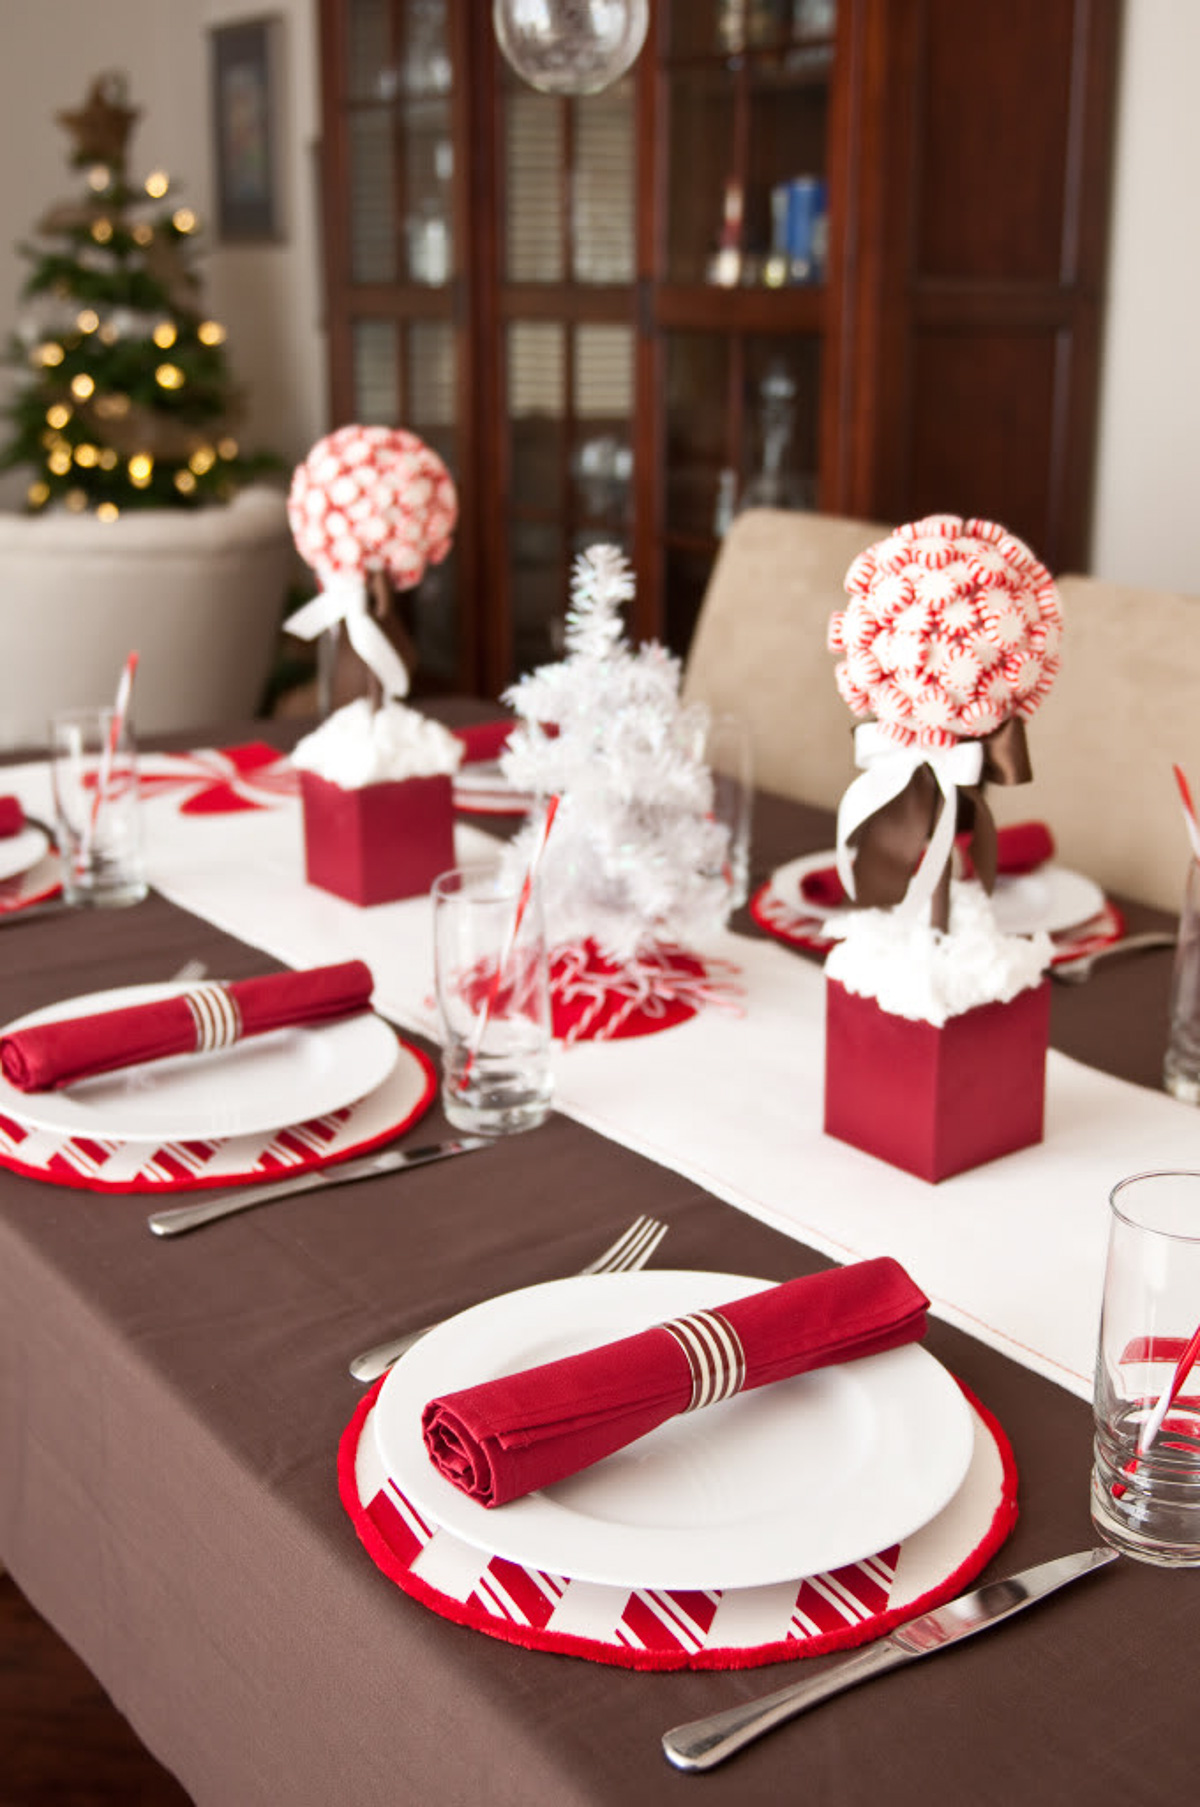 Holiday Table Setting Ideas_Creative Ways To Decorate The Table-1